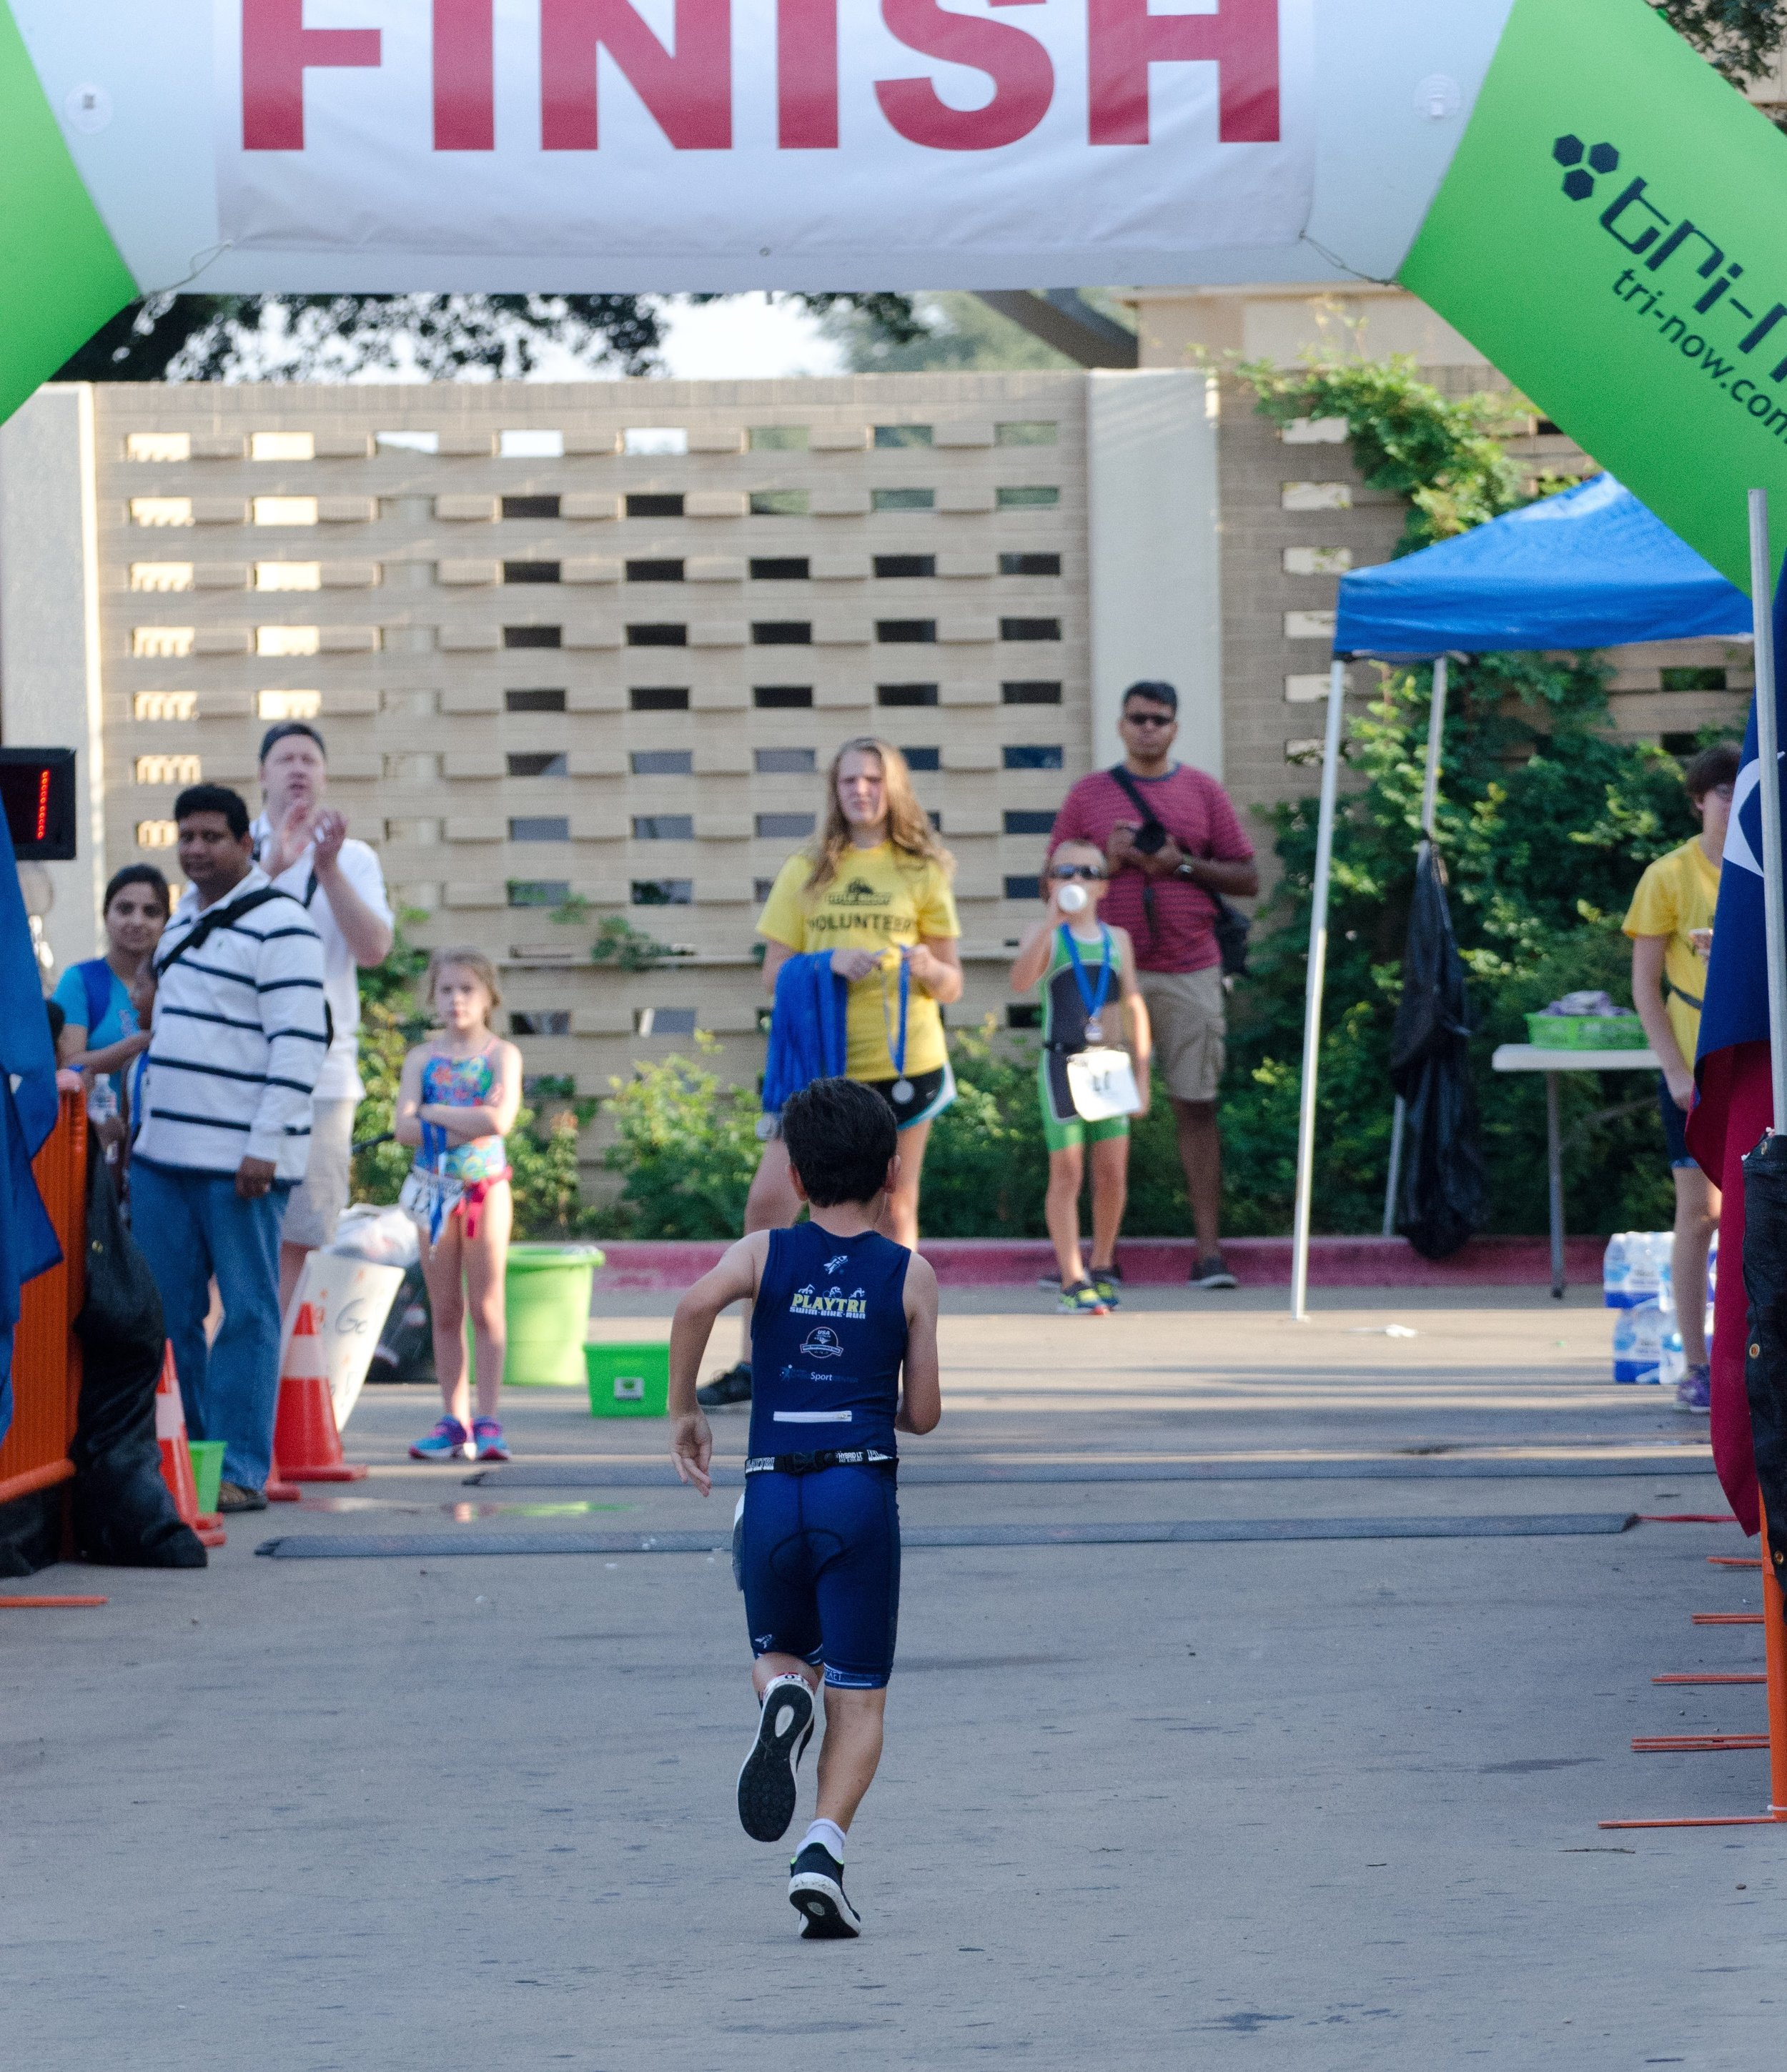 My son, Reed, crossing the finish line of his first triathlon at age 7. Athletes use awareness to stay present in the game, keep their focus and reach their goals. Photo by Jeff Wooten.